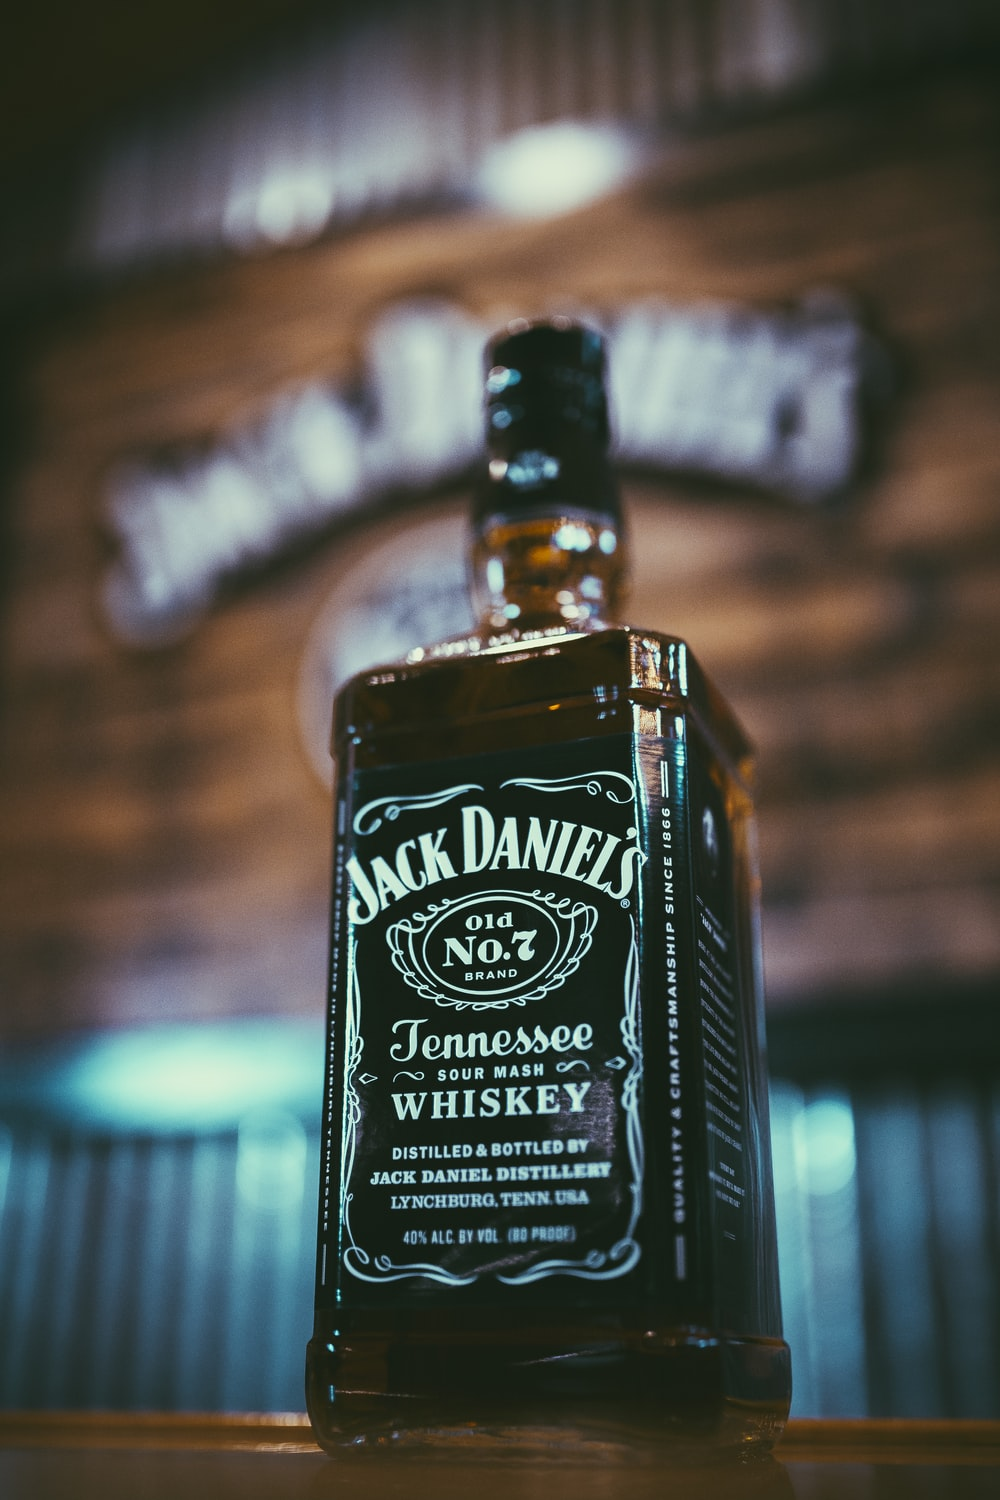 Jack Daniel's Tennessee glass bottle